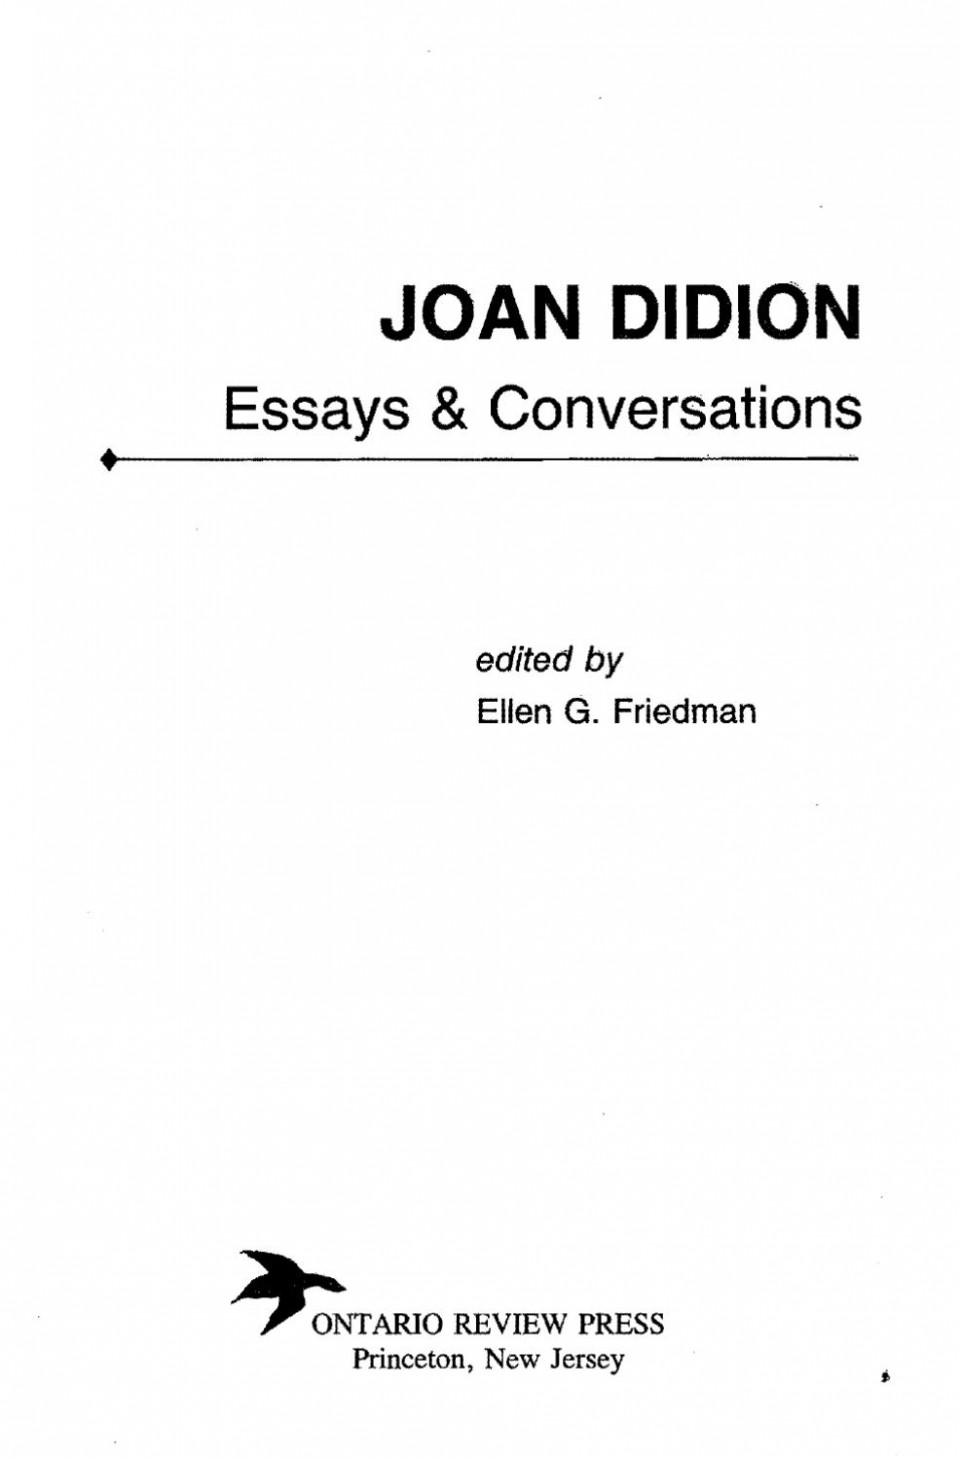 017 Essay Example Page 1 Joan Didion Singular Essays Collections On Santa Ana Winds Amazon 960